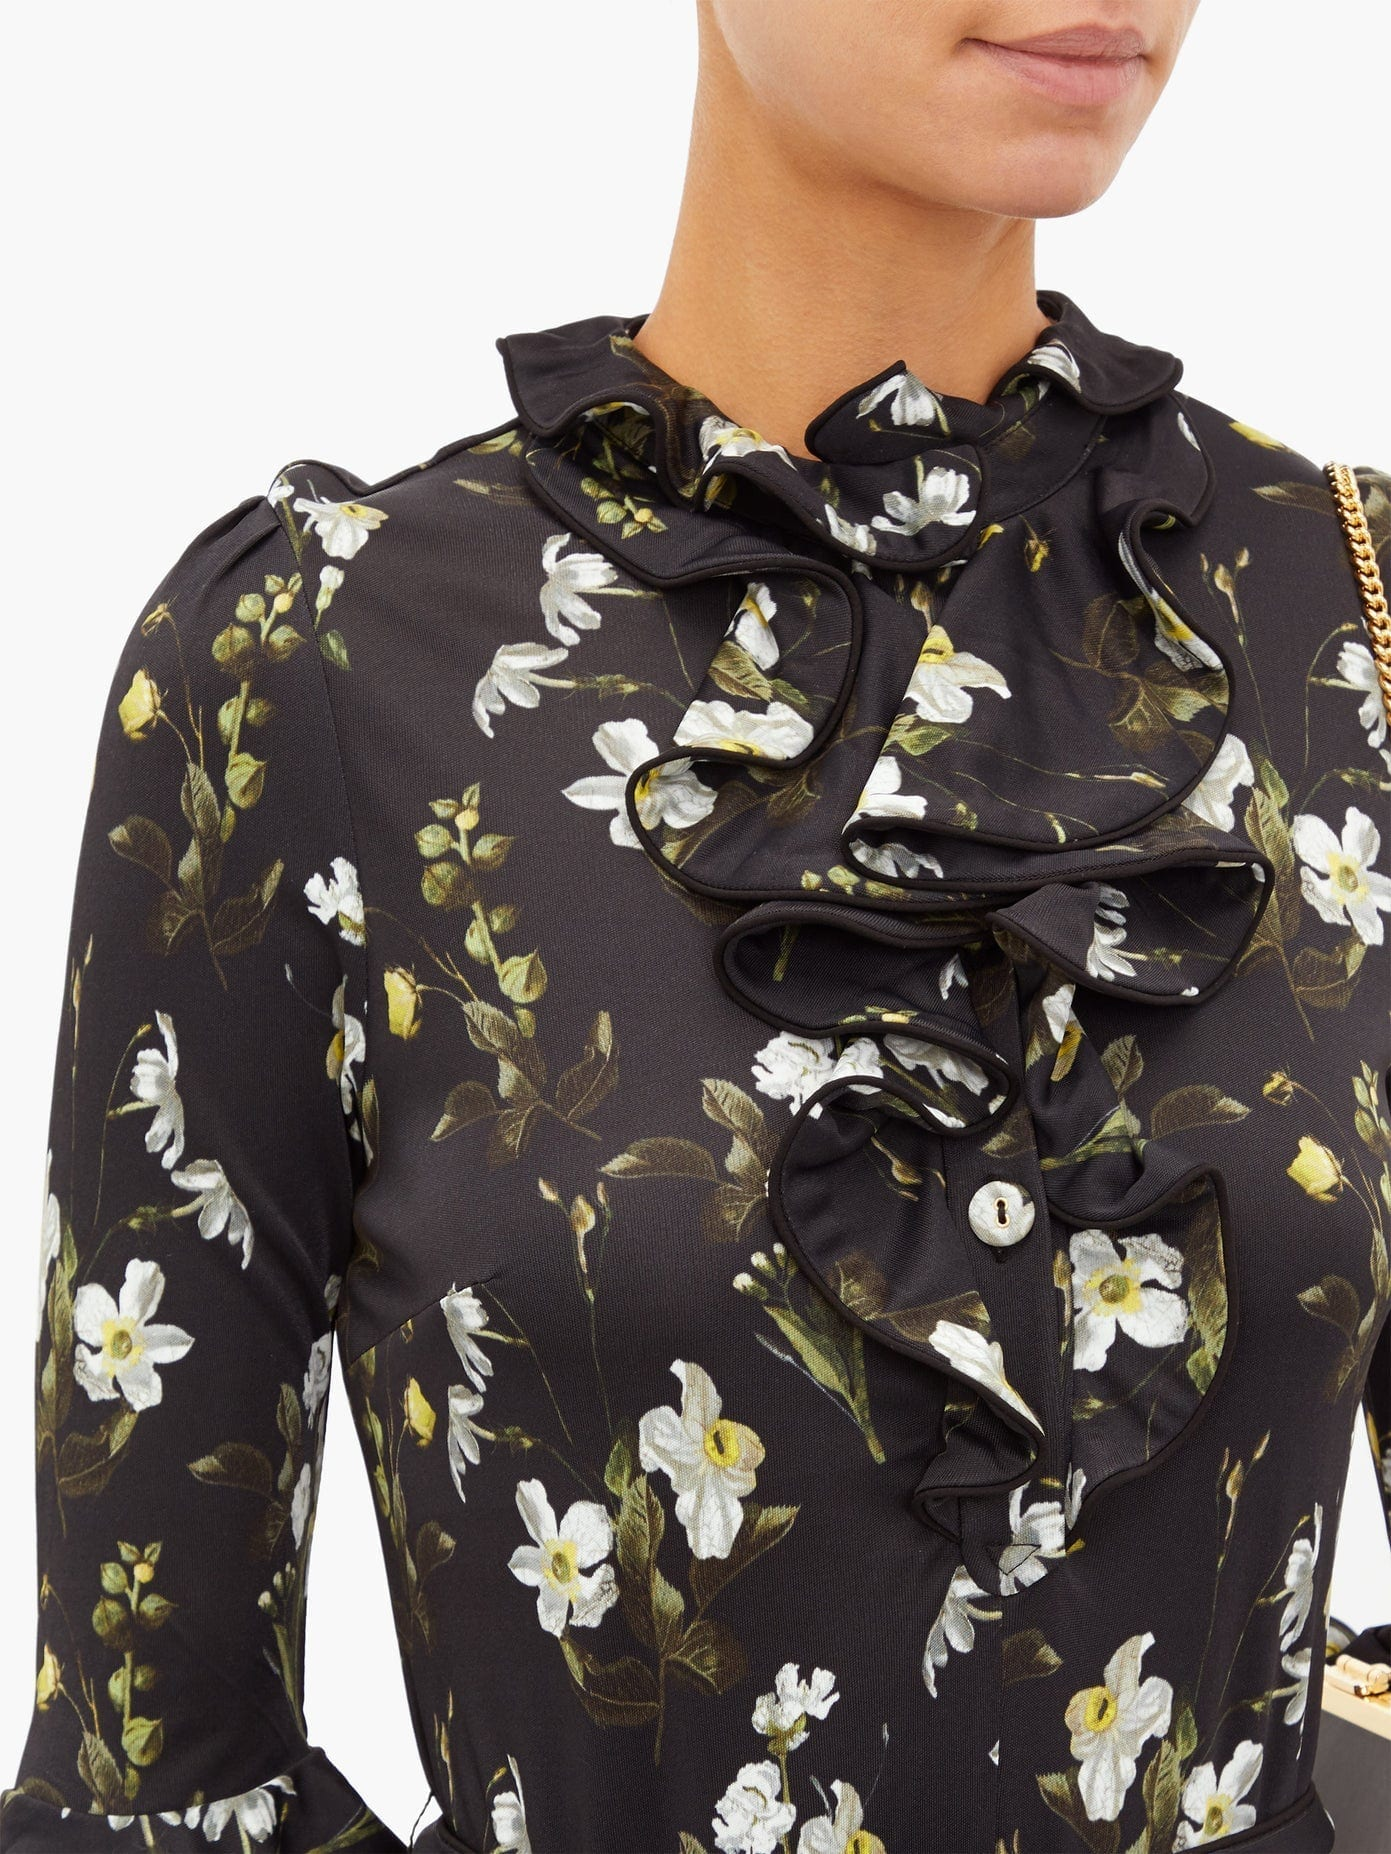 ERDEM Farrell Floral-print Satin-jersey Dress